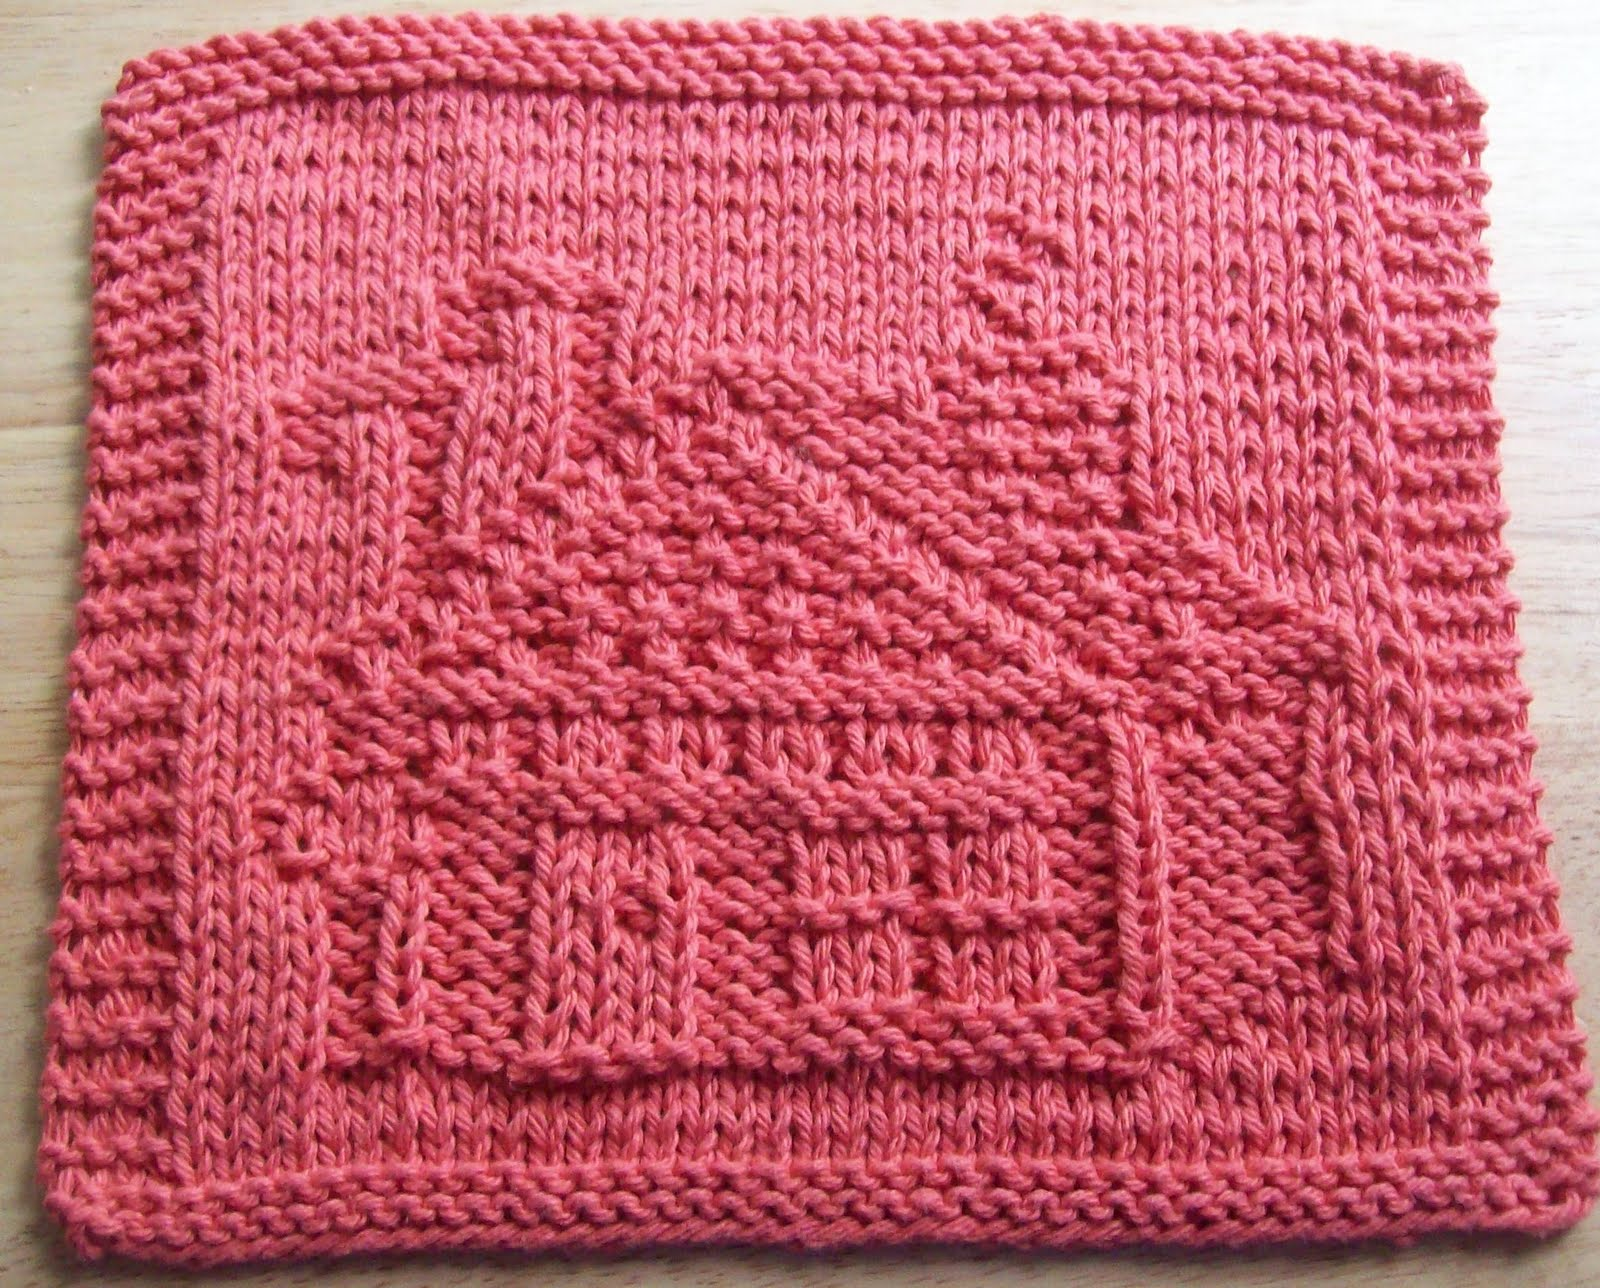 Knit Dishcloths Free Patterns : DigKnitty Designs: Gingerbread House Too Knit Dishcloth Pattern